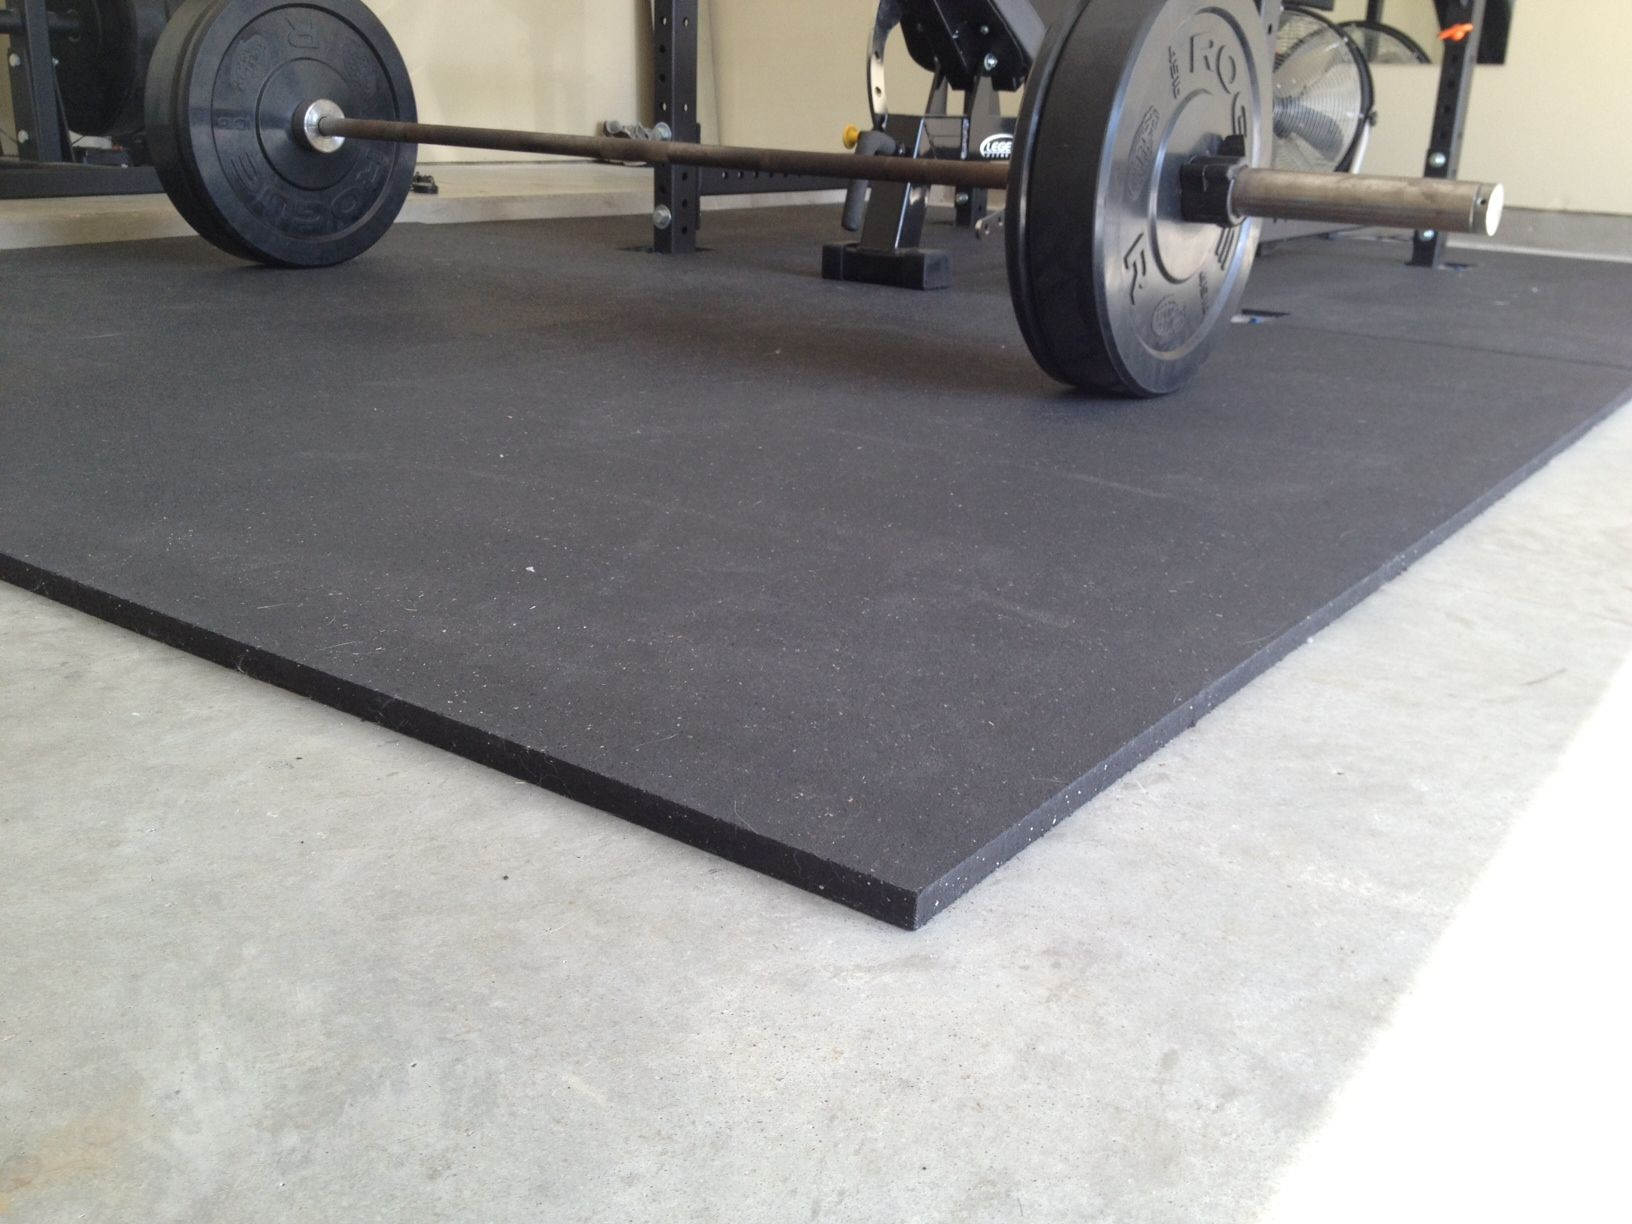 rubber gym mats for my garage gym flooring Fitness